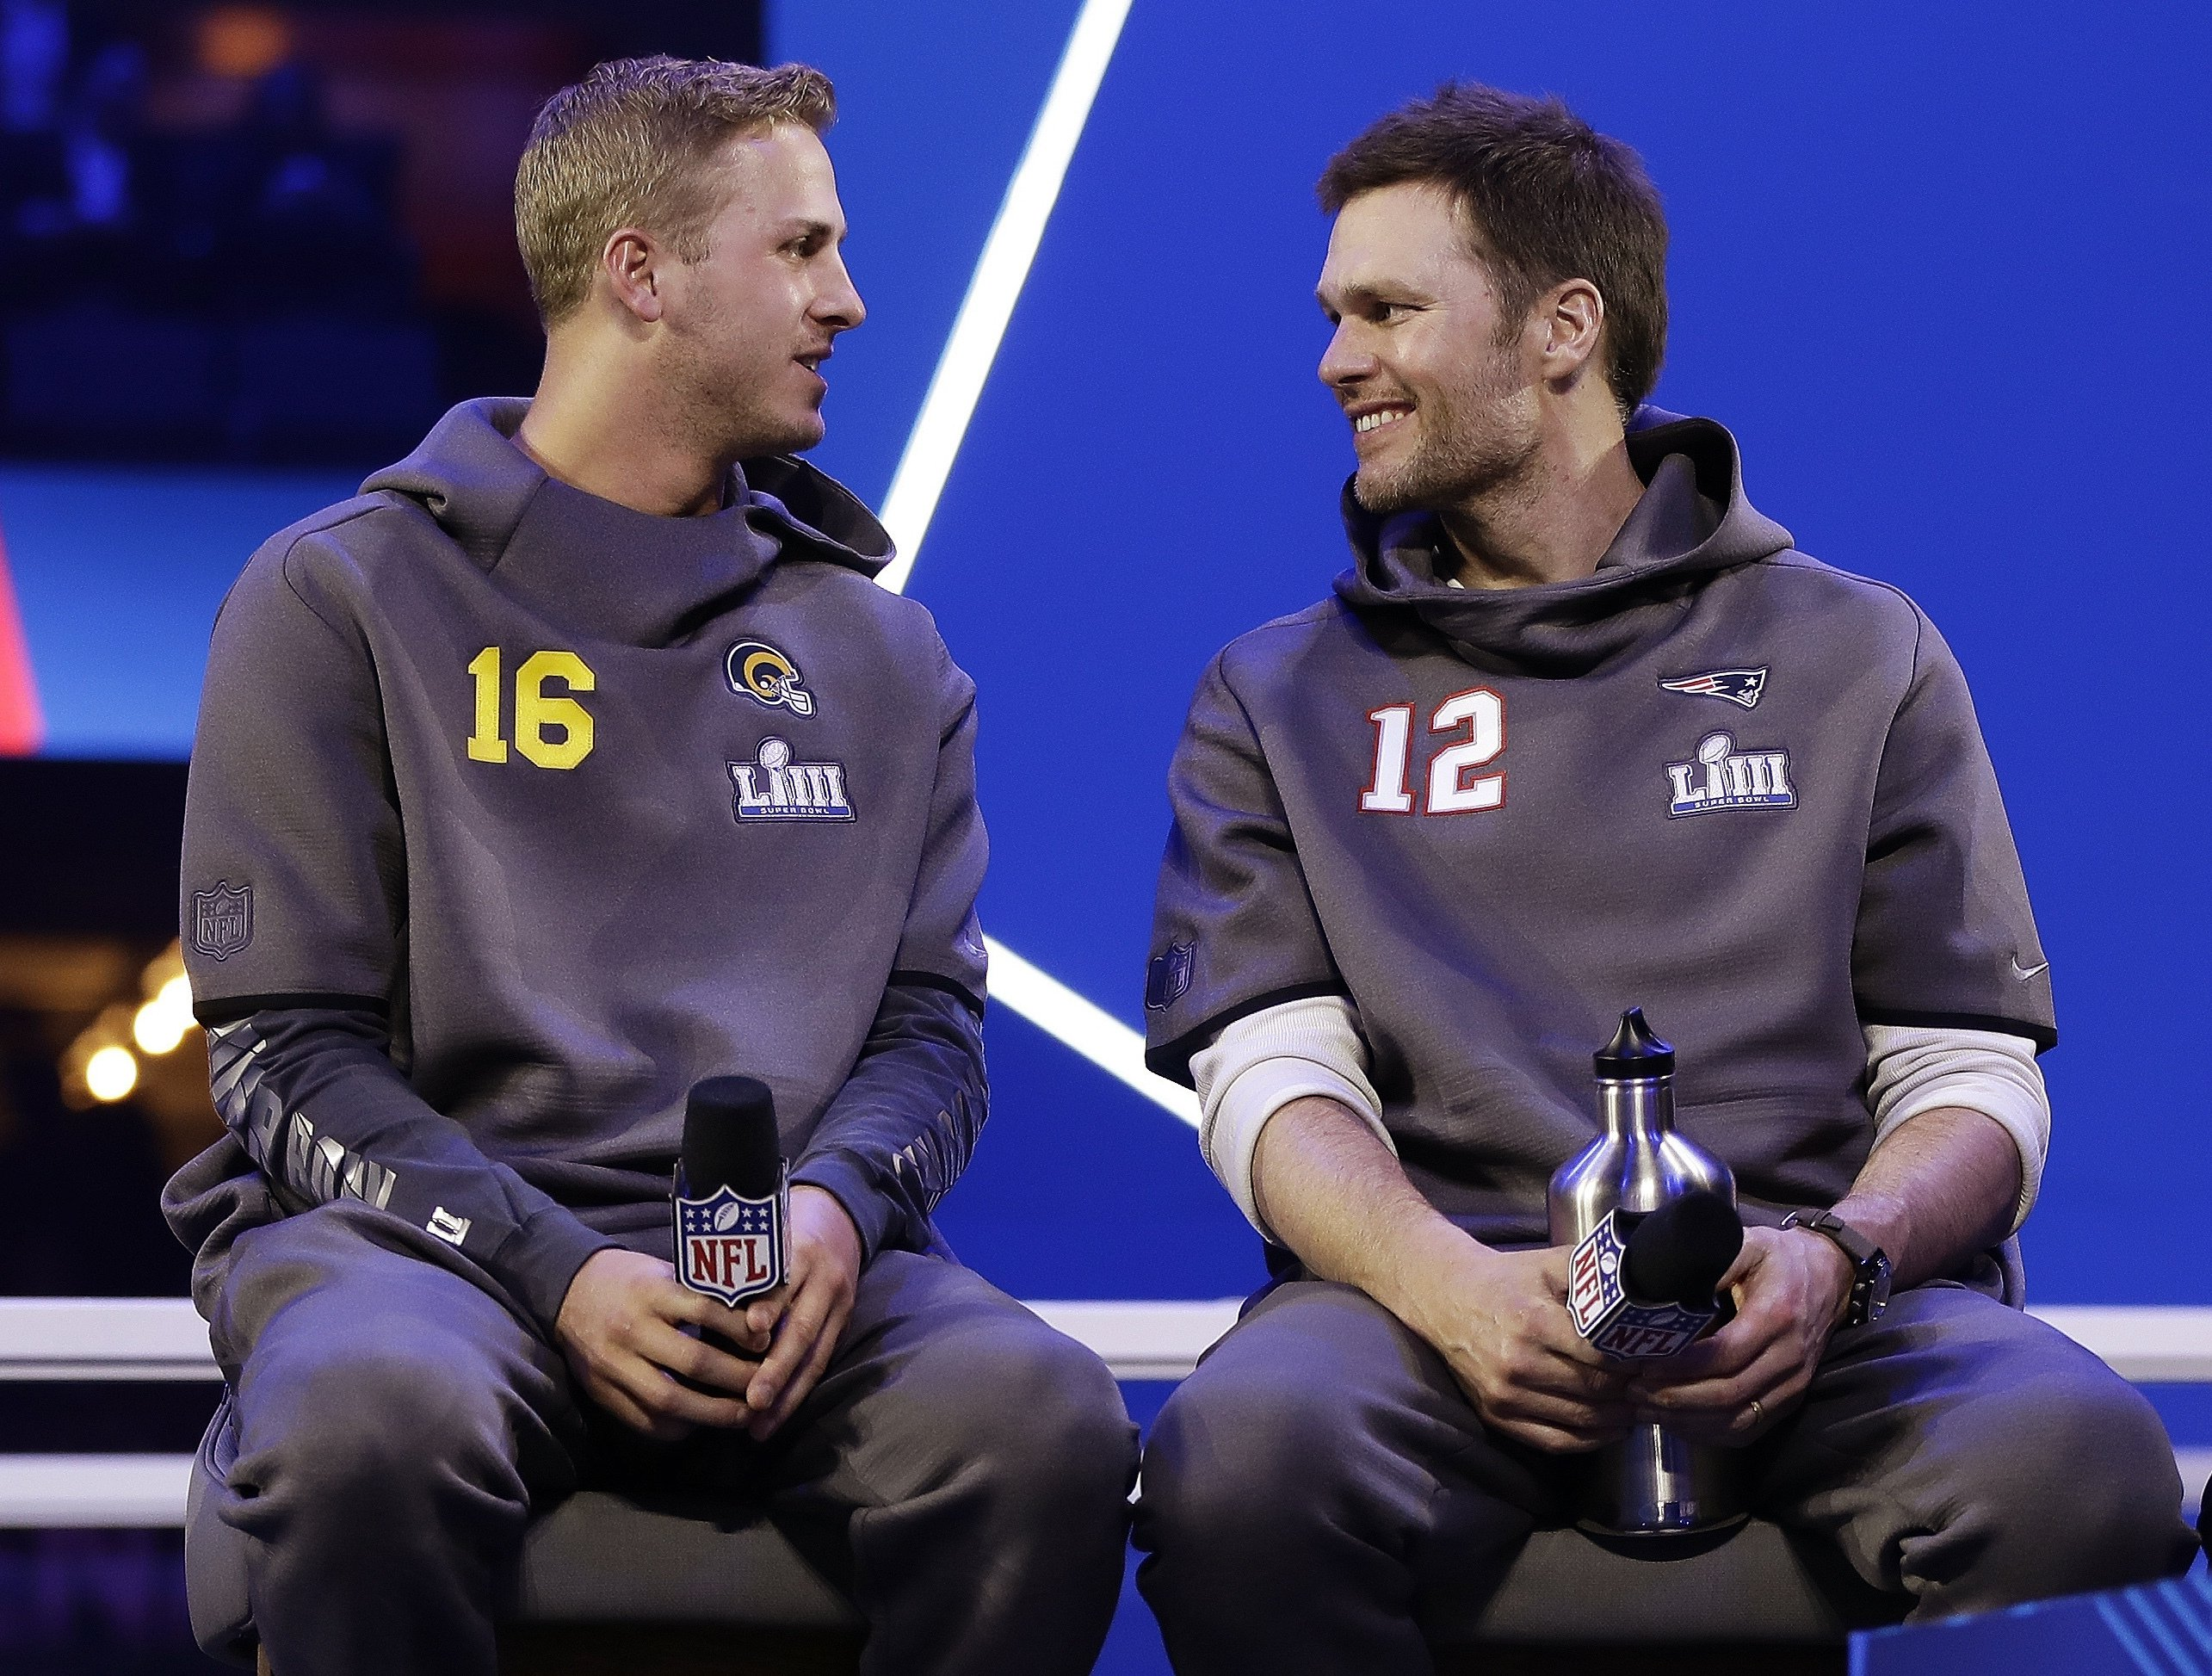 Brady, Goff have massive age gap, but same Super Bowl dream - Associated Press thumbnail